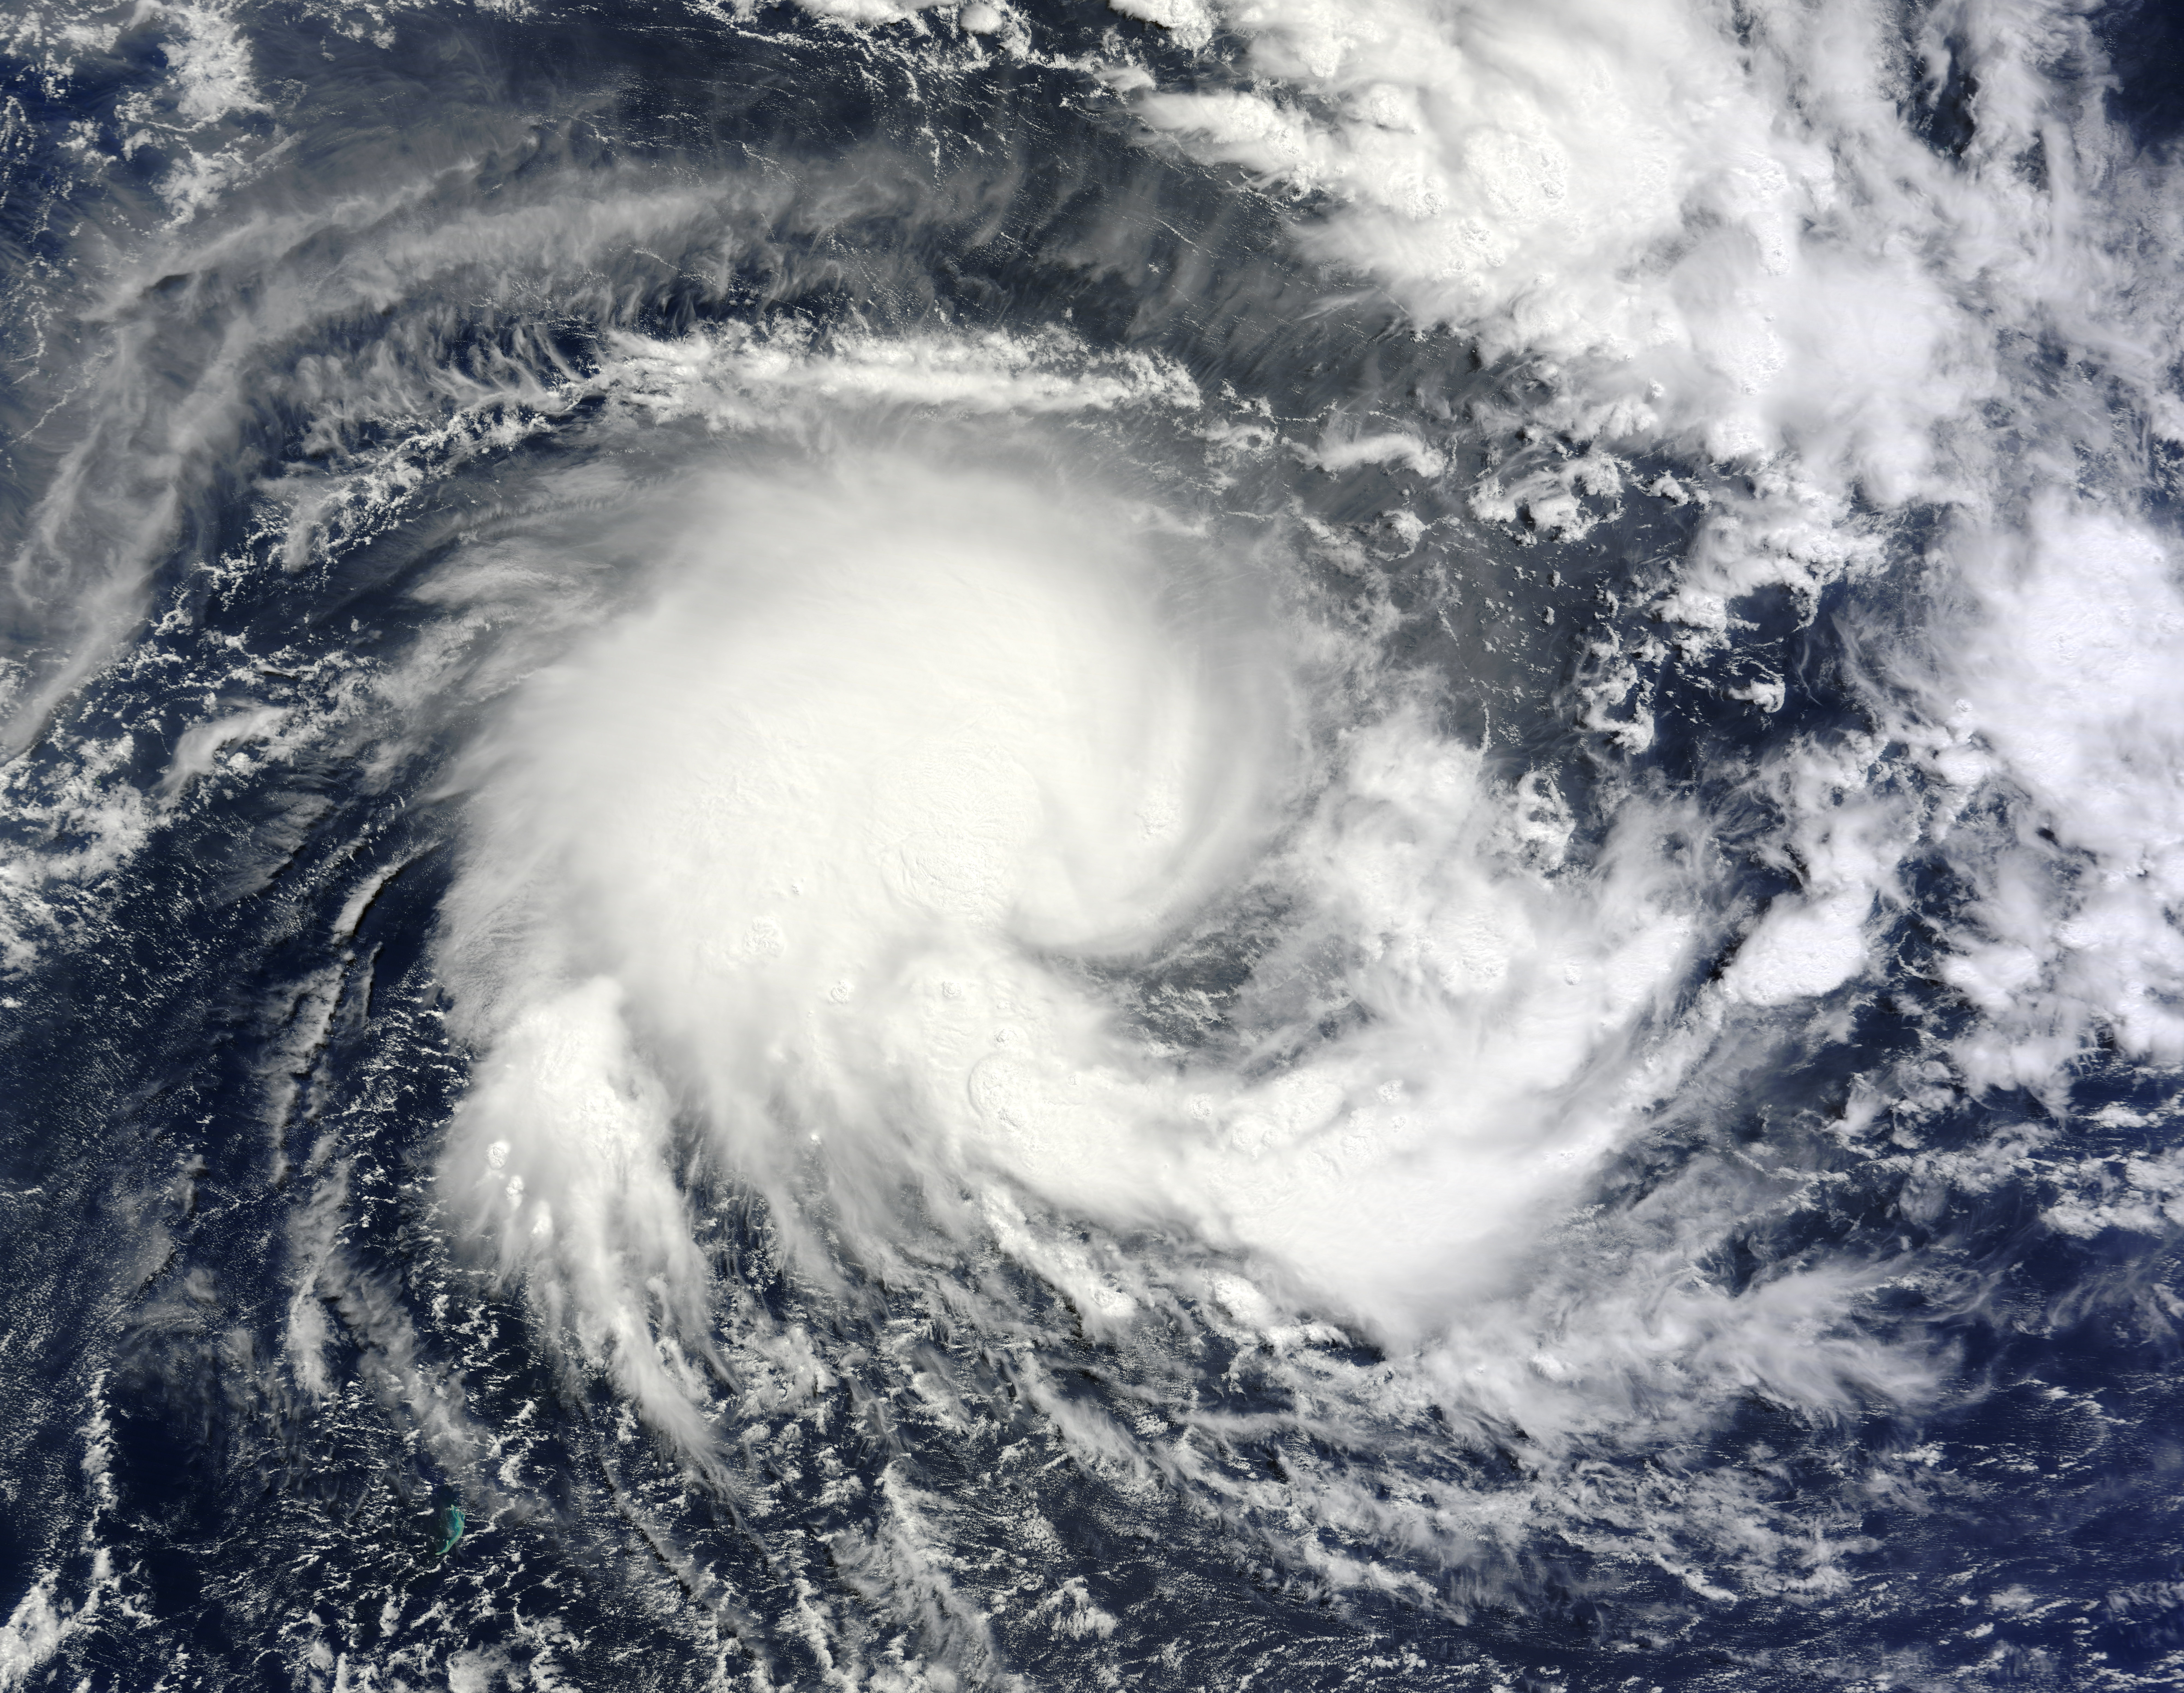 tropical storms Tropical cyclone: tropical cyclone, an intense circular storm that originates over warm tropical oceans and is characterized by low atmospheric pressure, high winds, and heavy rain.